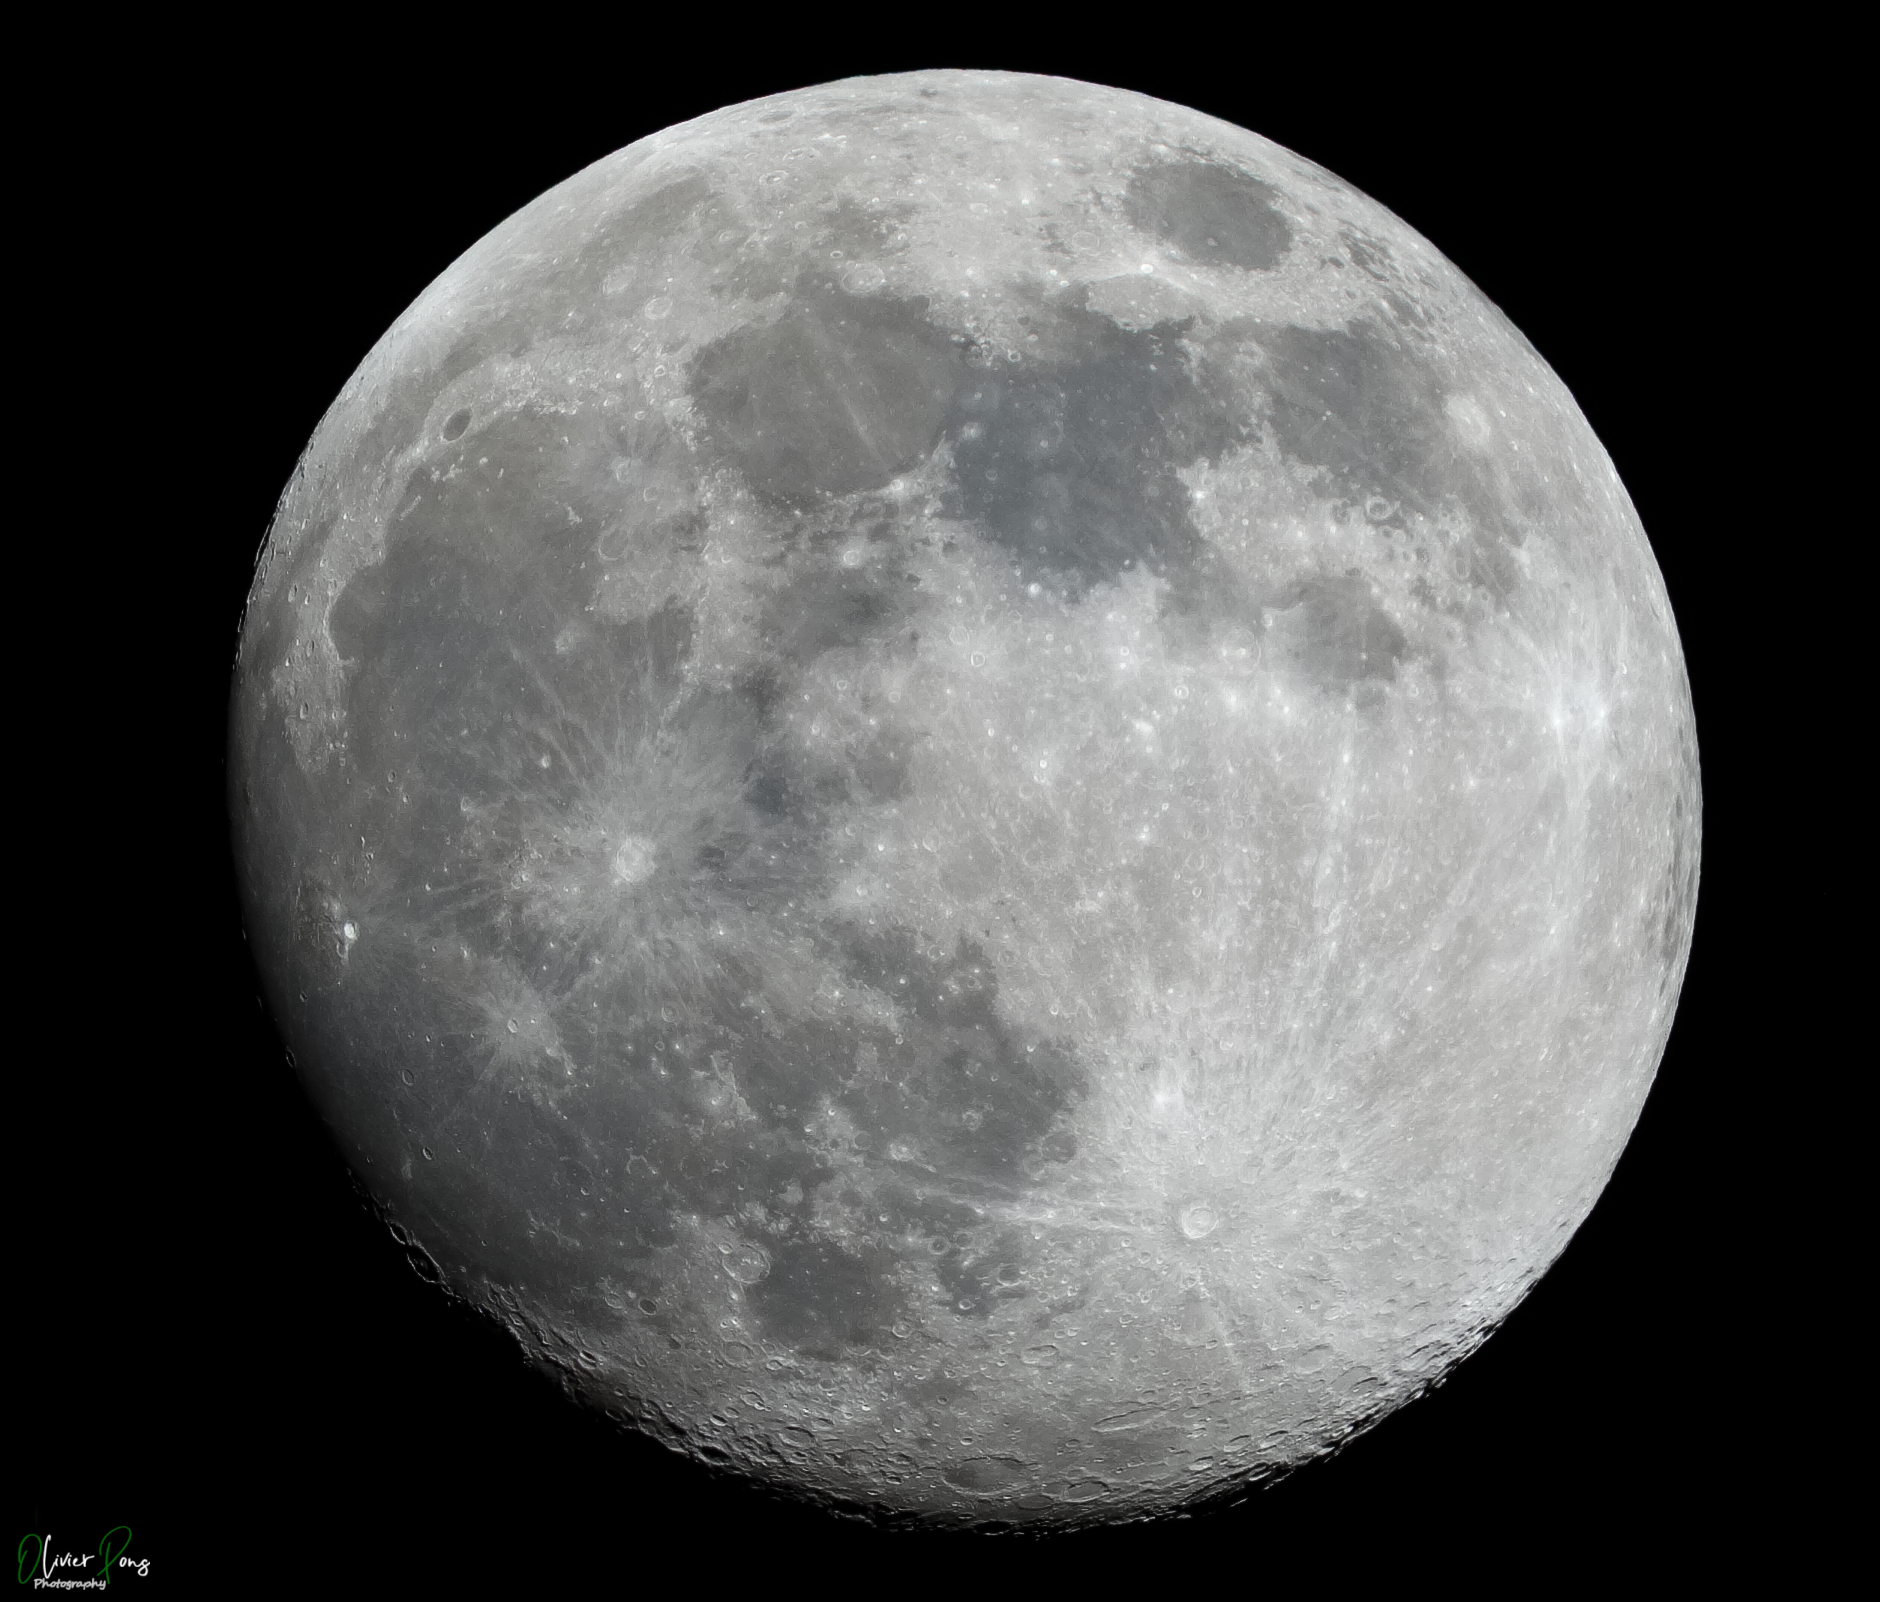 lune_20200505_web.png